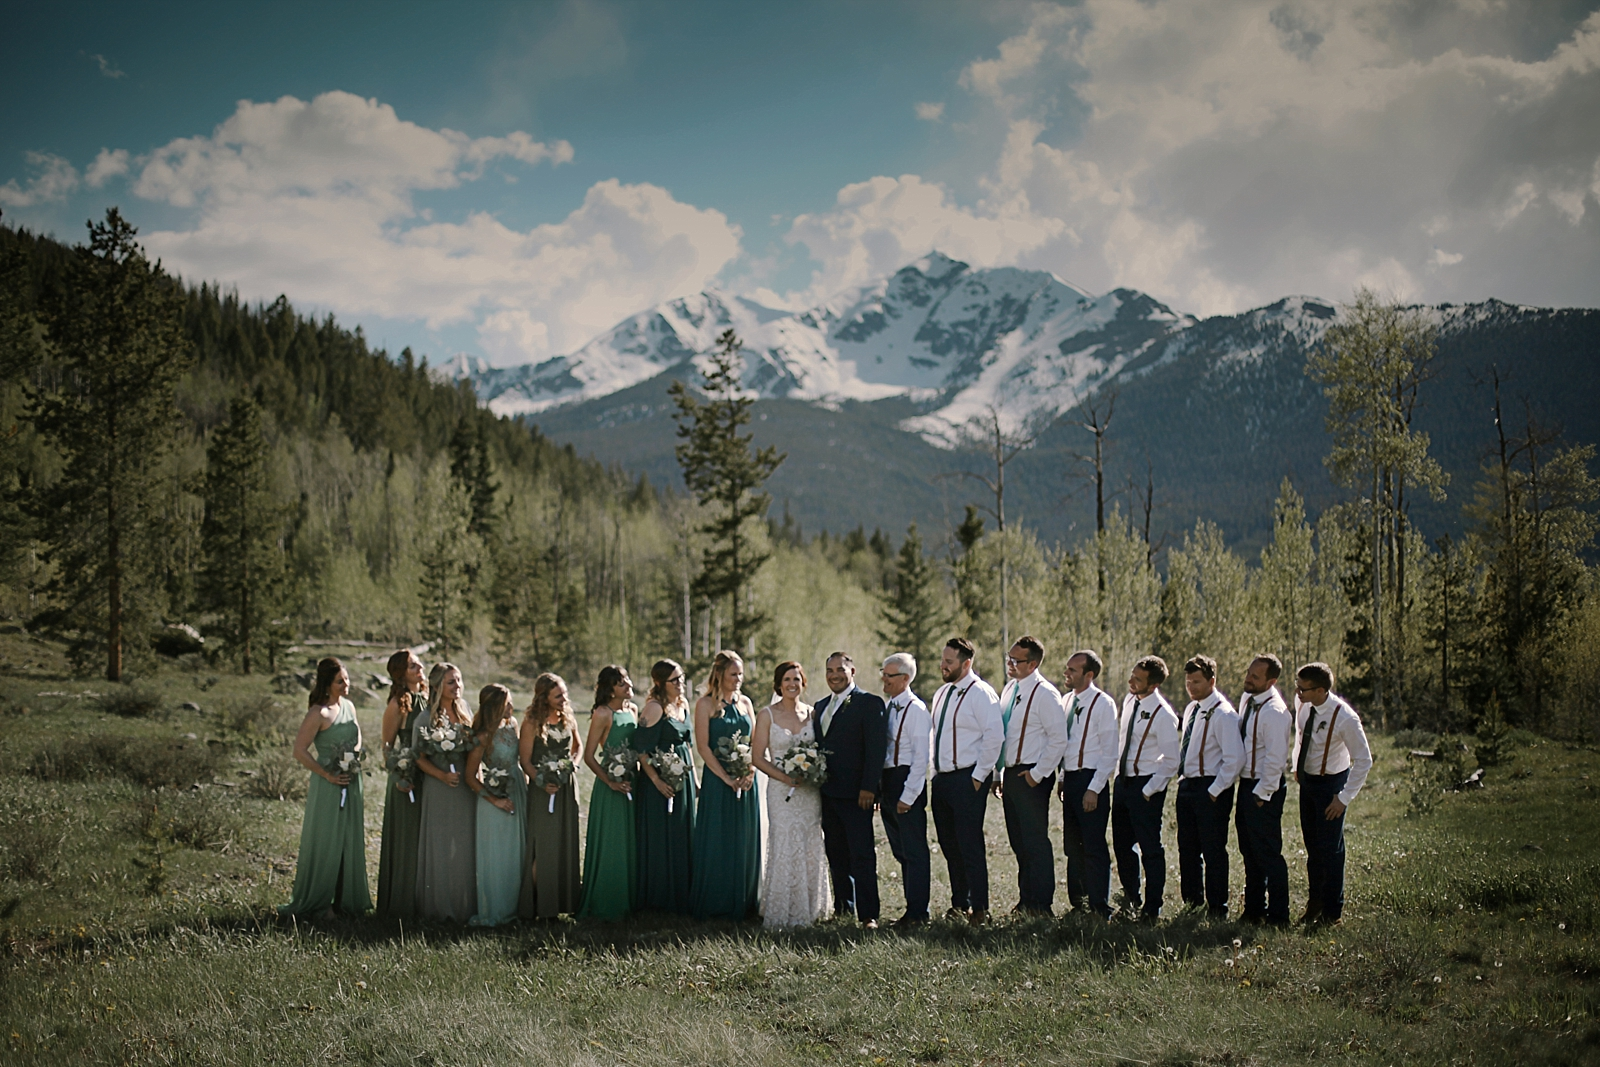 bridal party at agape outpost, breckenridge colorado wedding, breckenridge colorado wedding photographer, the church at agape outpost wedding, agape outpost wedding photographer